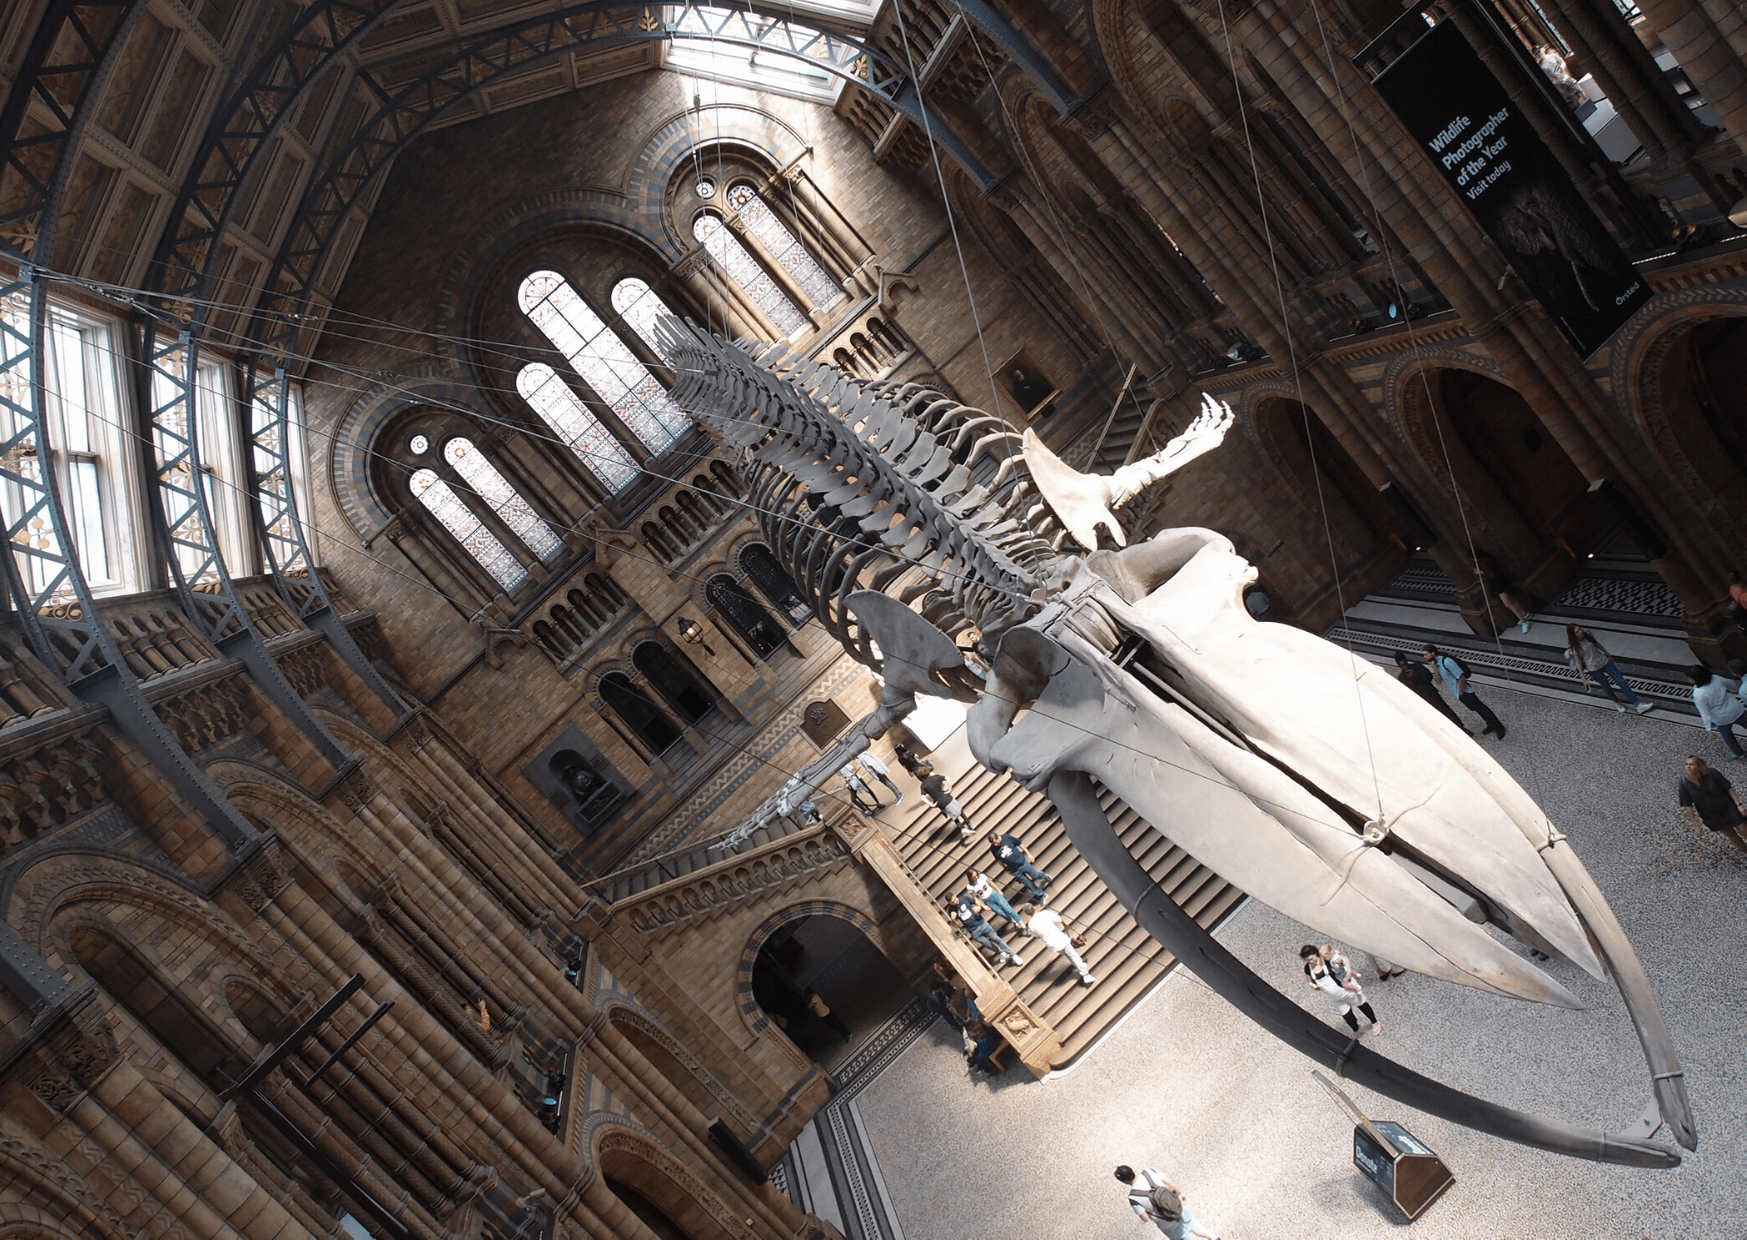 Hintze Hall, with its impressive whale skeleton; Natural History Museum, home of London's dinosaurs; what to do in London with a small child